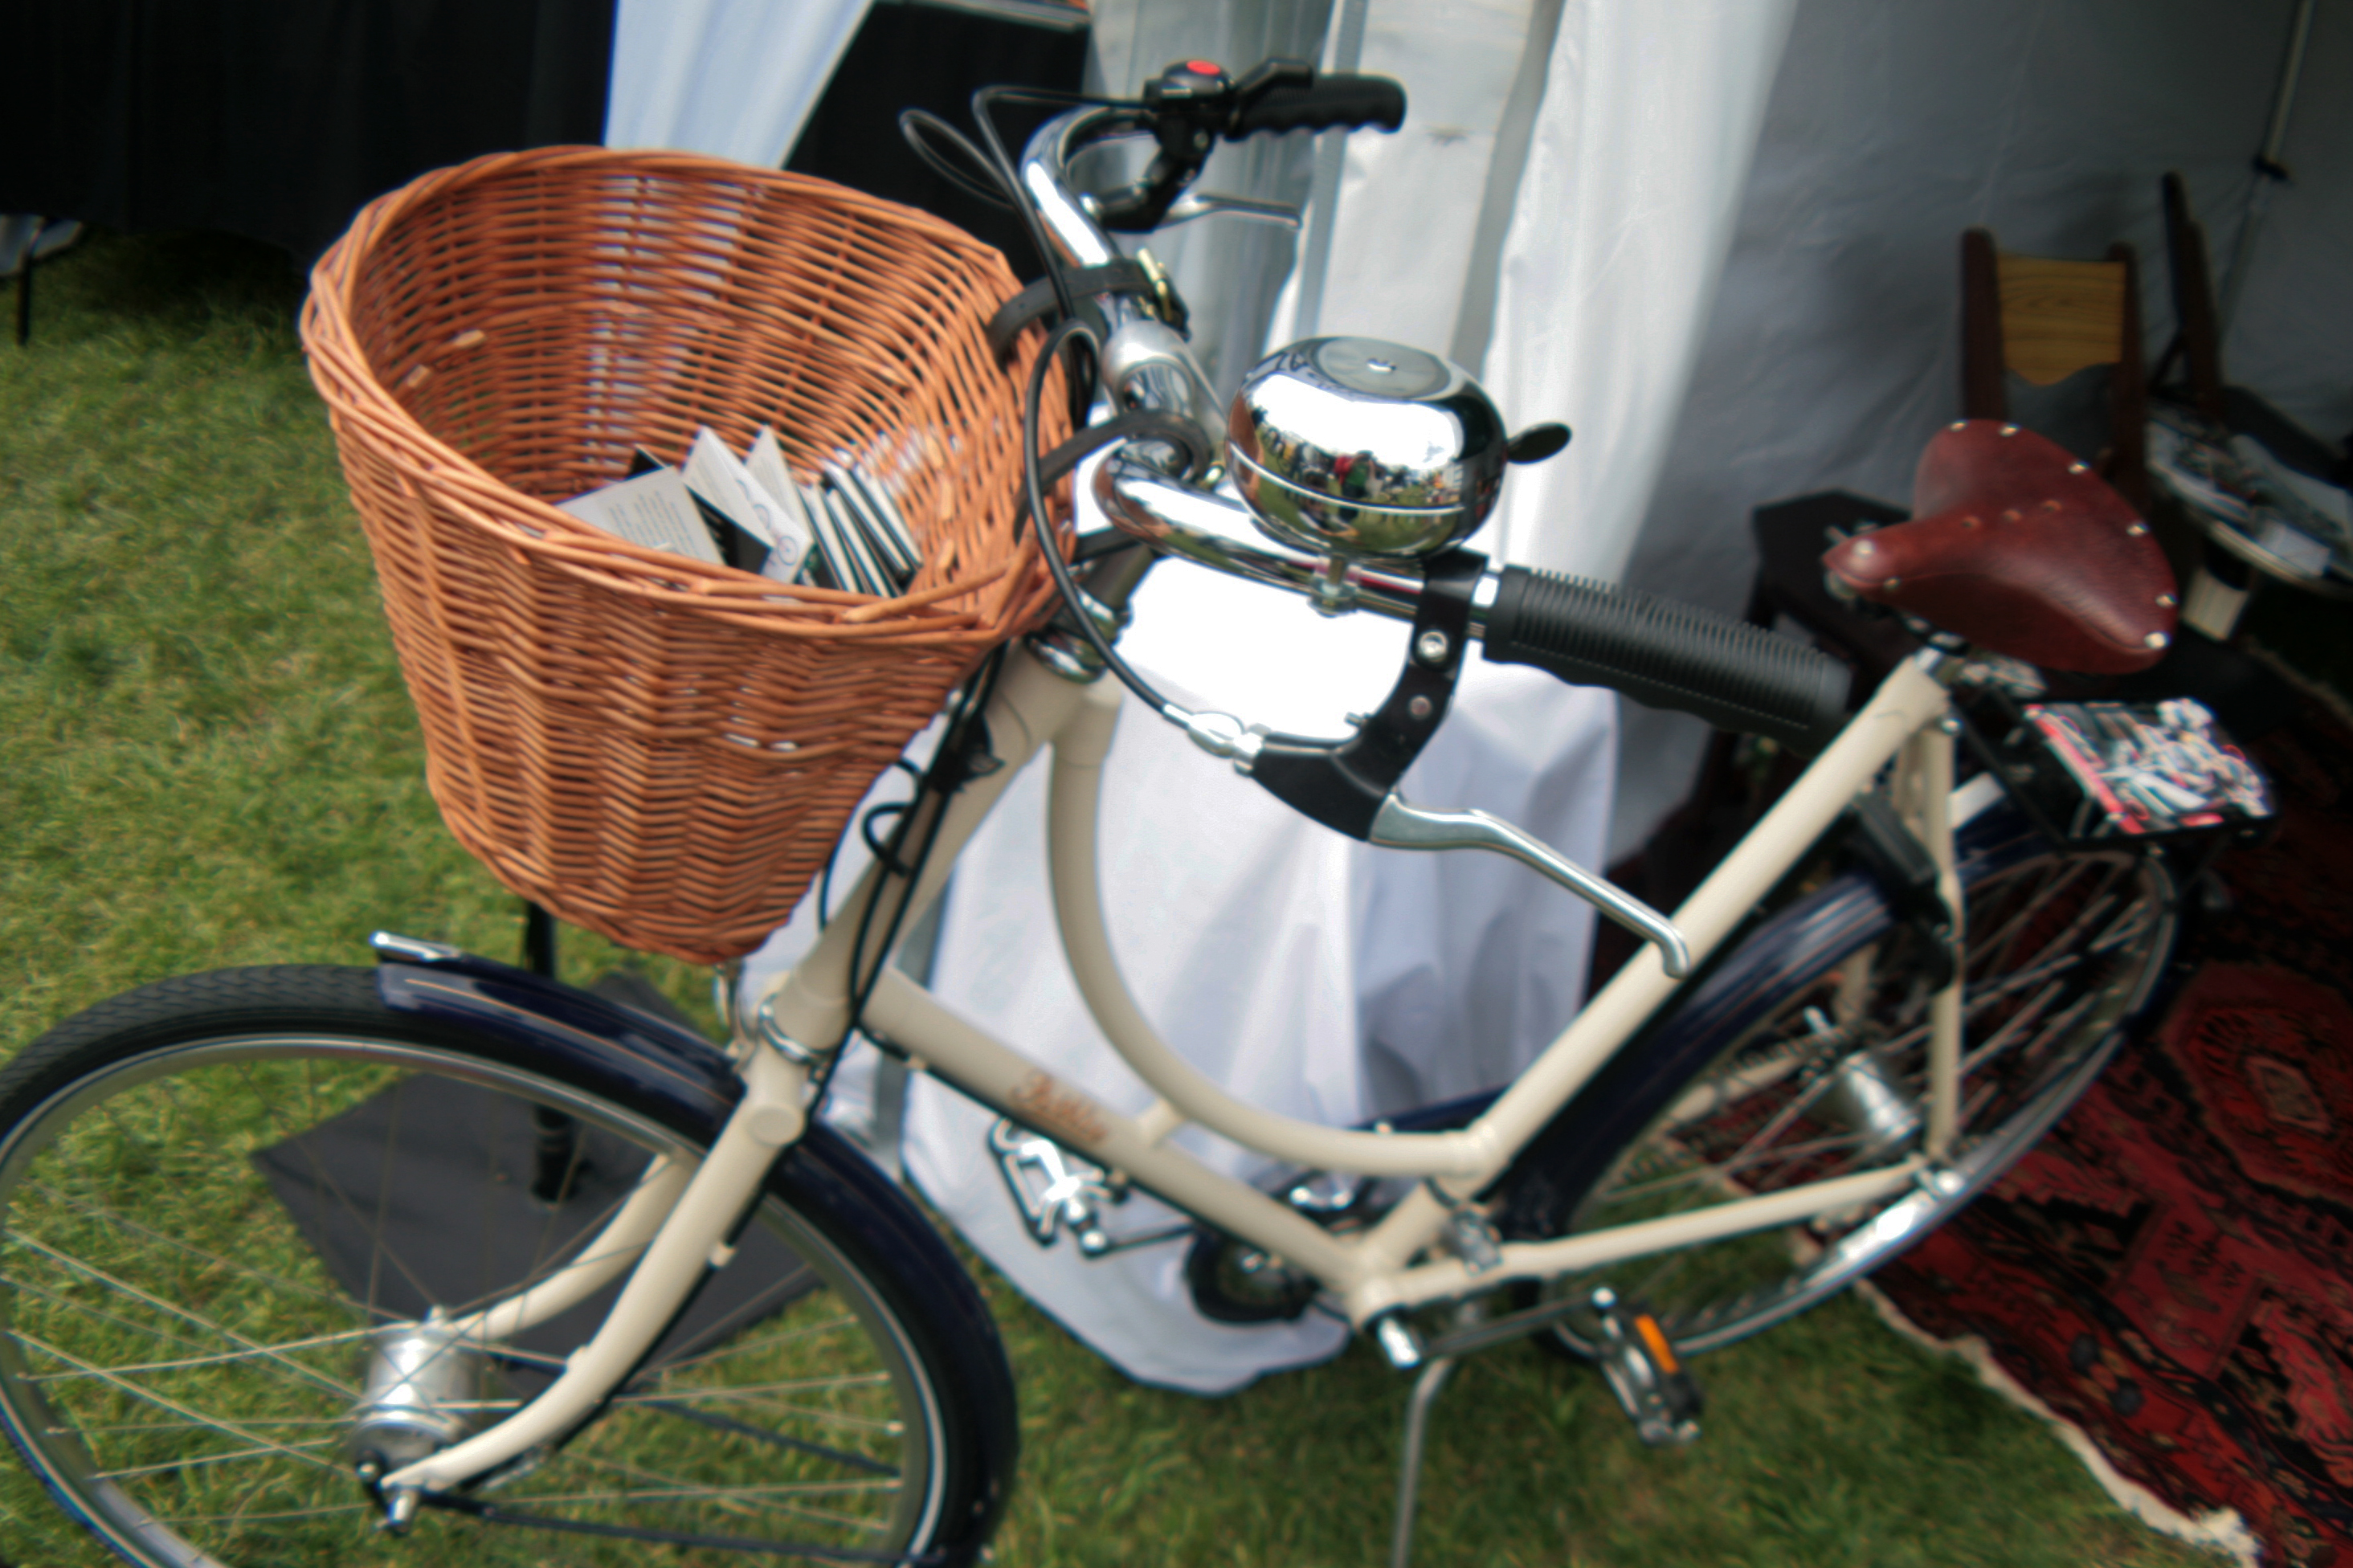 Bikes With Baskets In The Back Bicycle basket